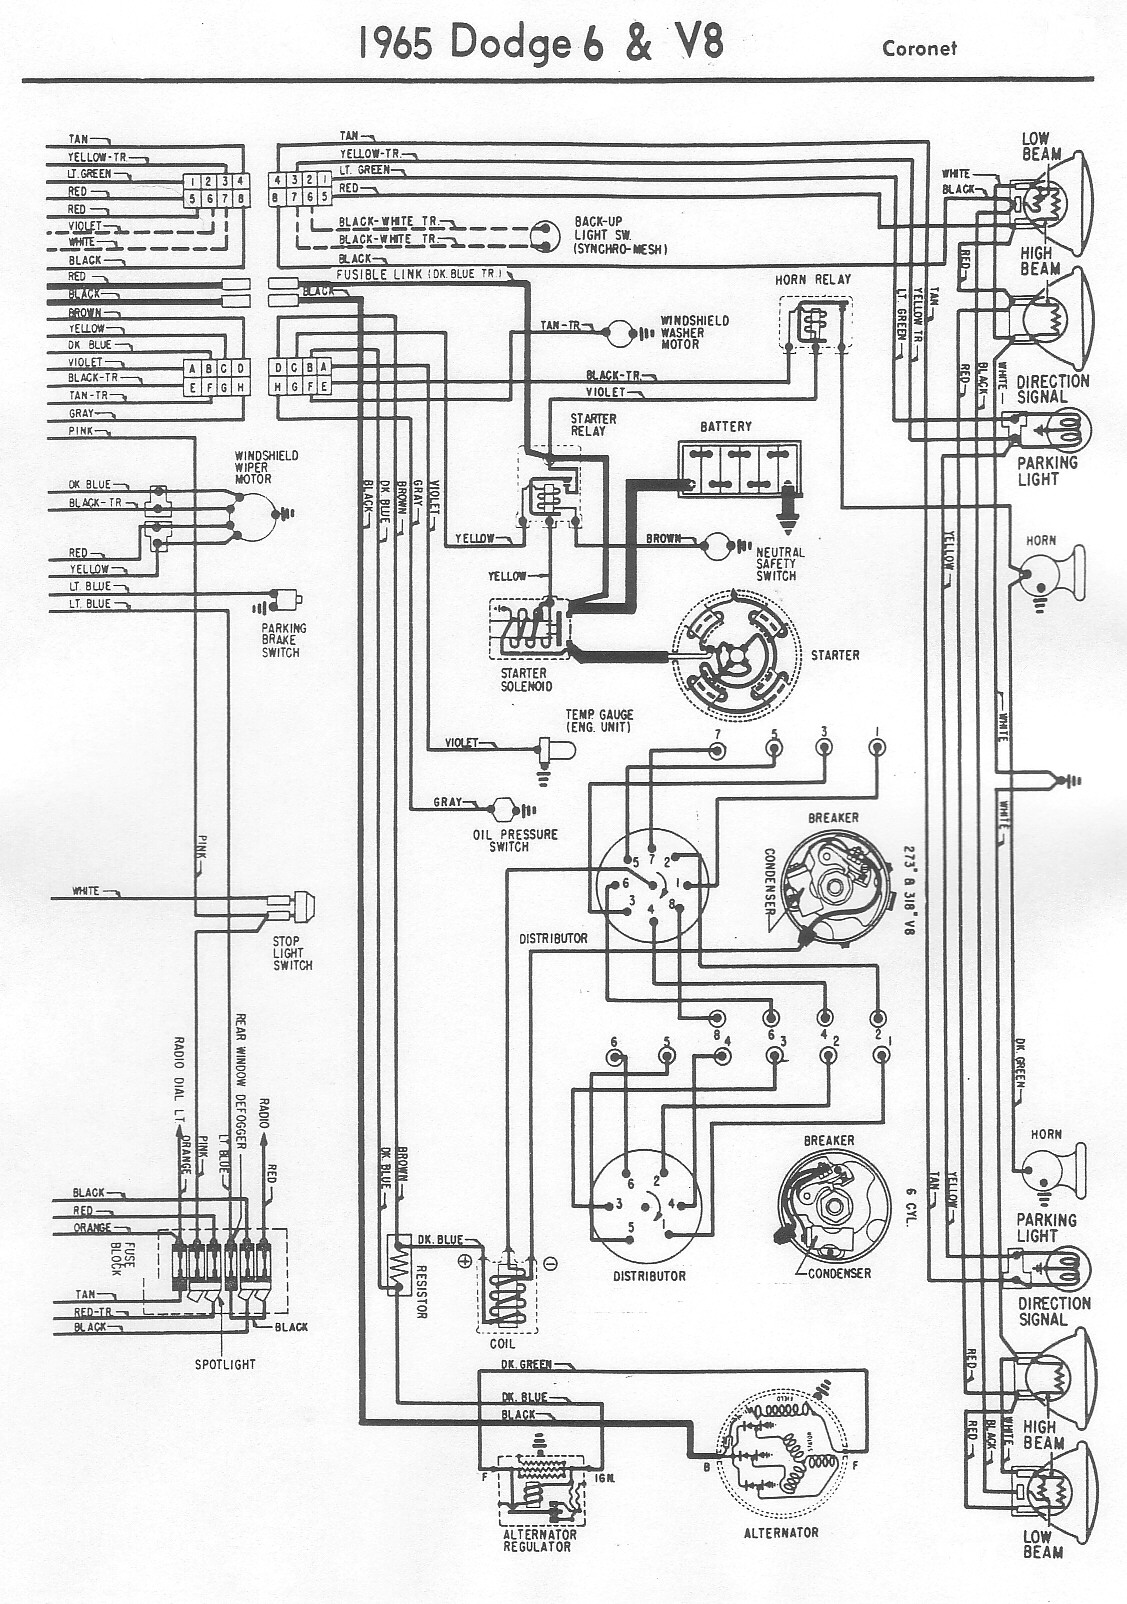 hight resolution of 1966 dodge d 300 wiring diagram wiring diagram portal 1966 dodge charger wiring diagram 1963 chrysler